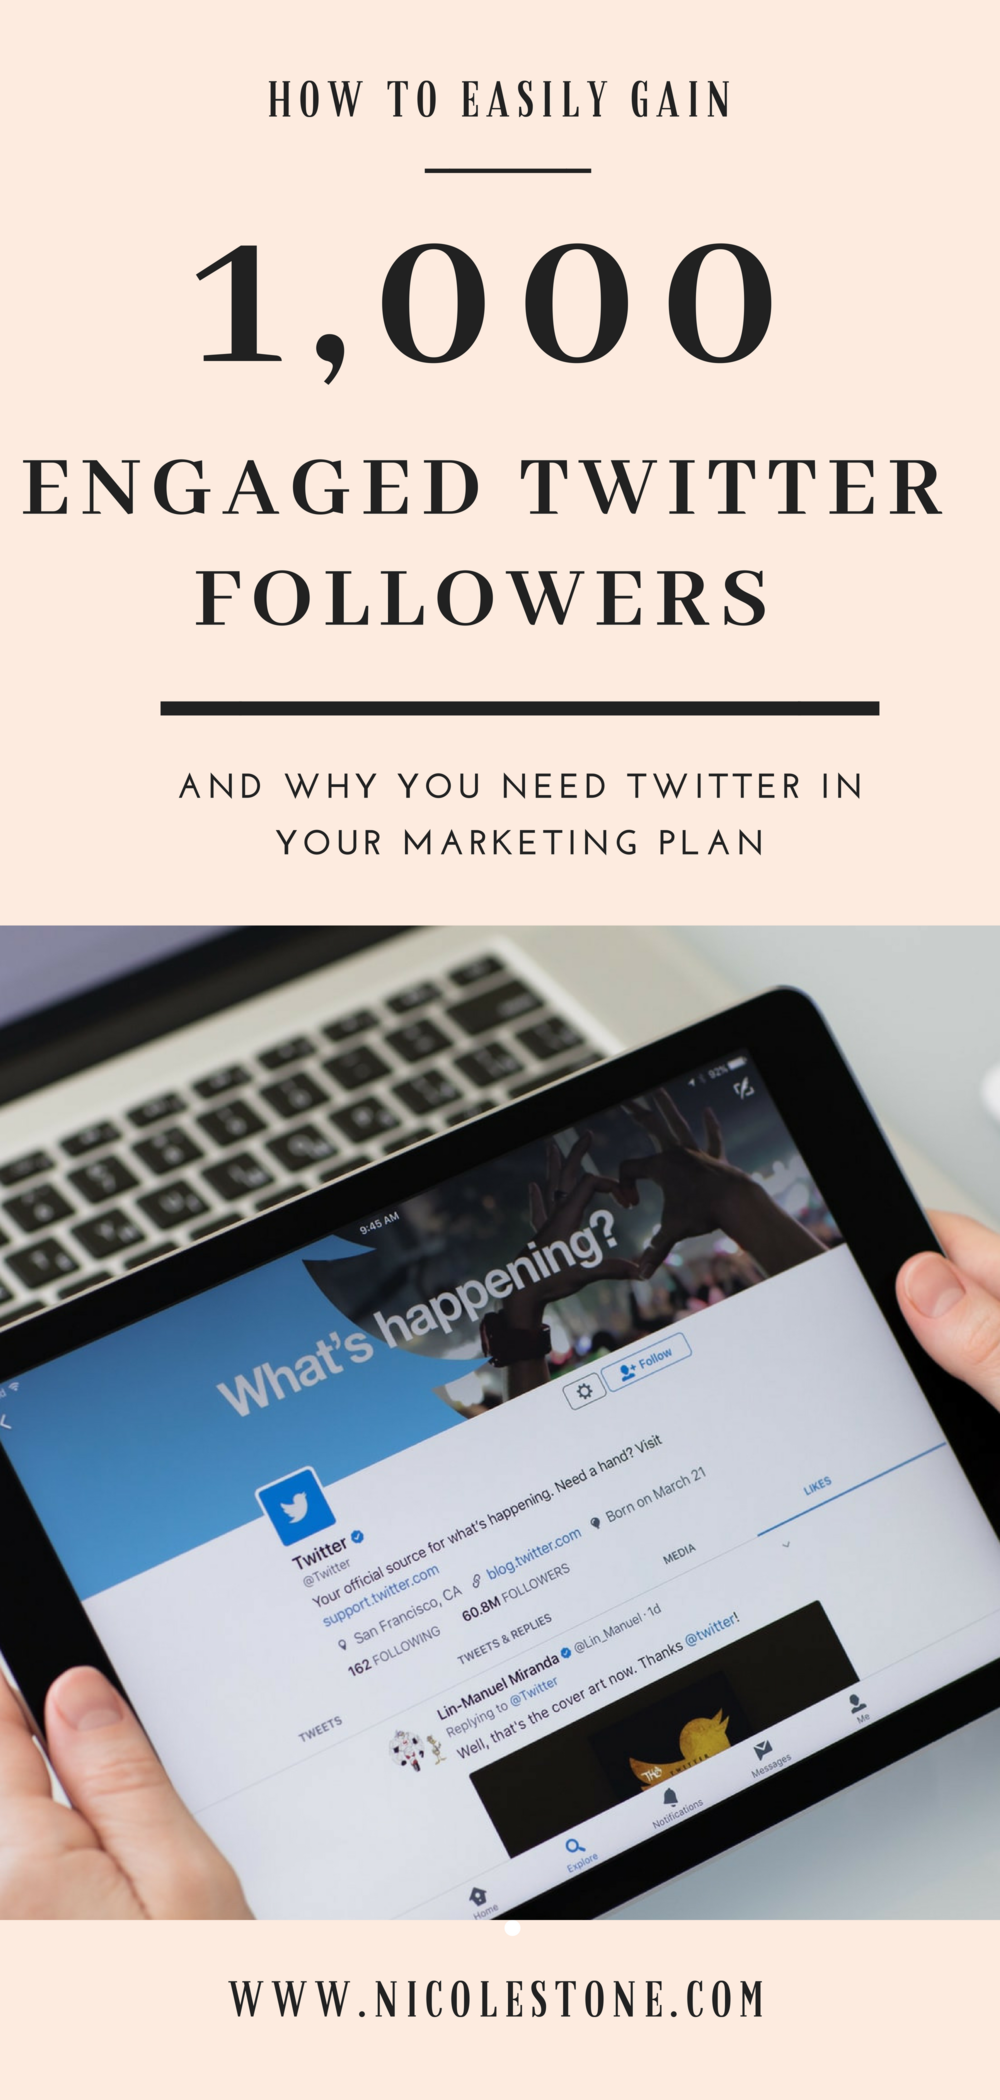 How to Gain Twitter Followers.png